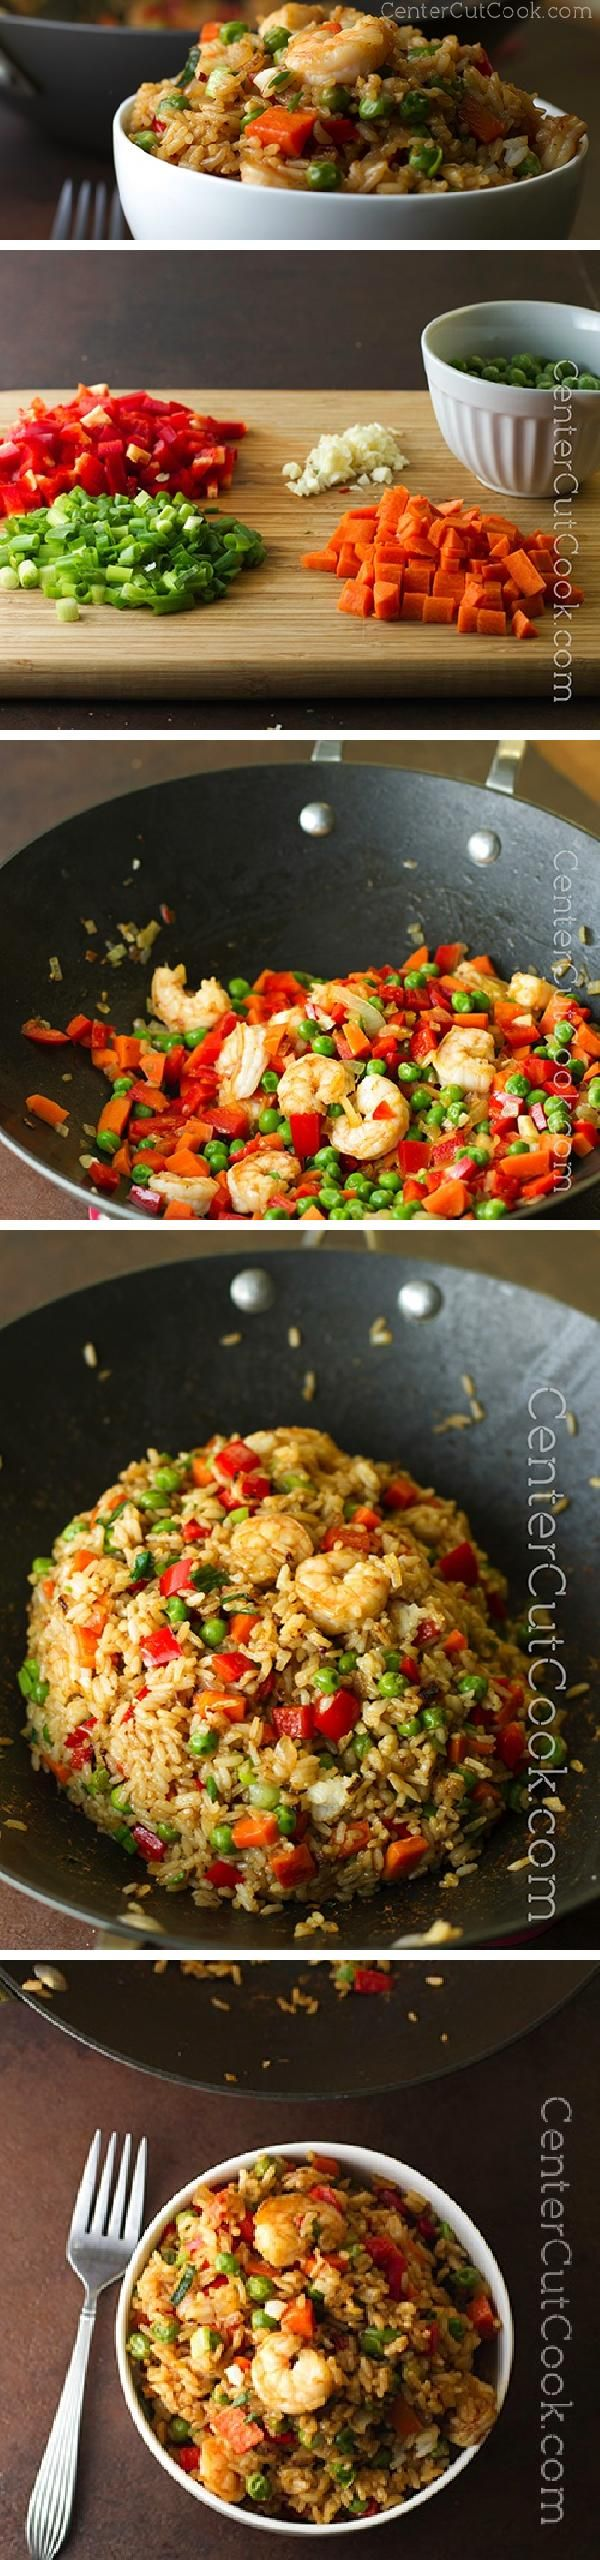 Chinese Fried Rice   Recipe   Asian recipes, Food recipes ...